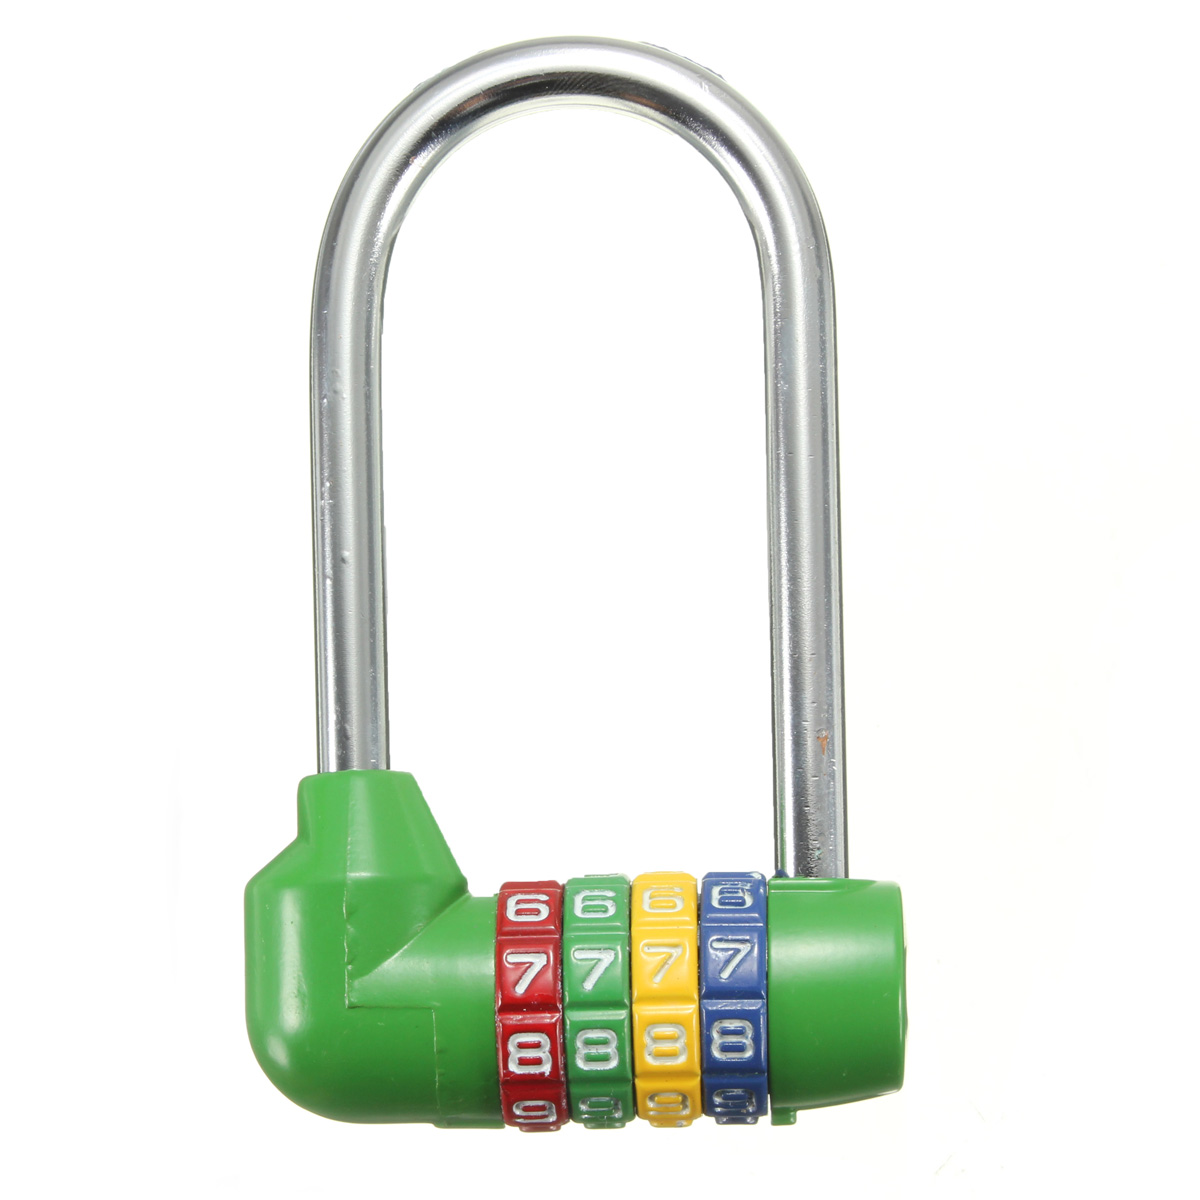 Long Digit Safety Combination Lock 4 Number Code Dial Padlock Security Luggage Drawer Cabinet Suitcase Wardrobe Home Travel Anti-theft